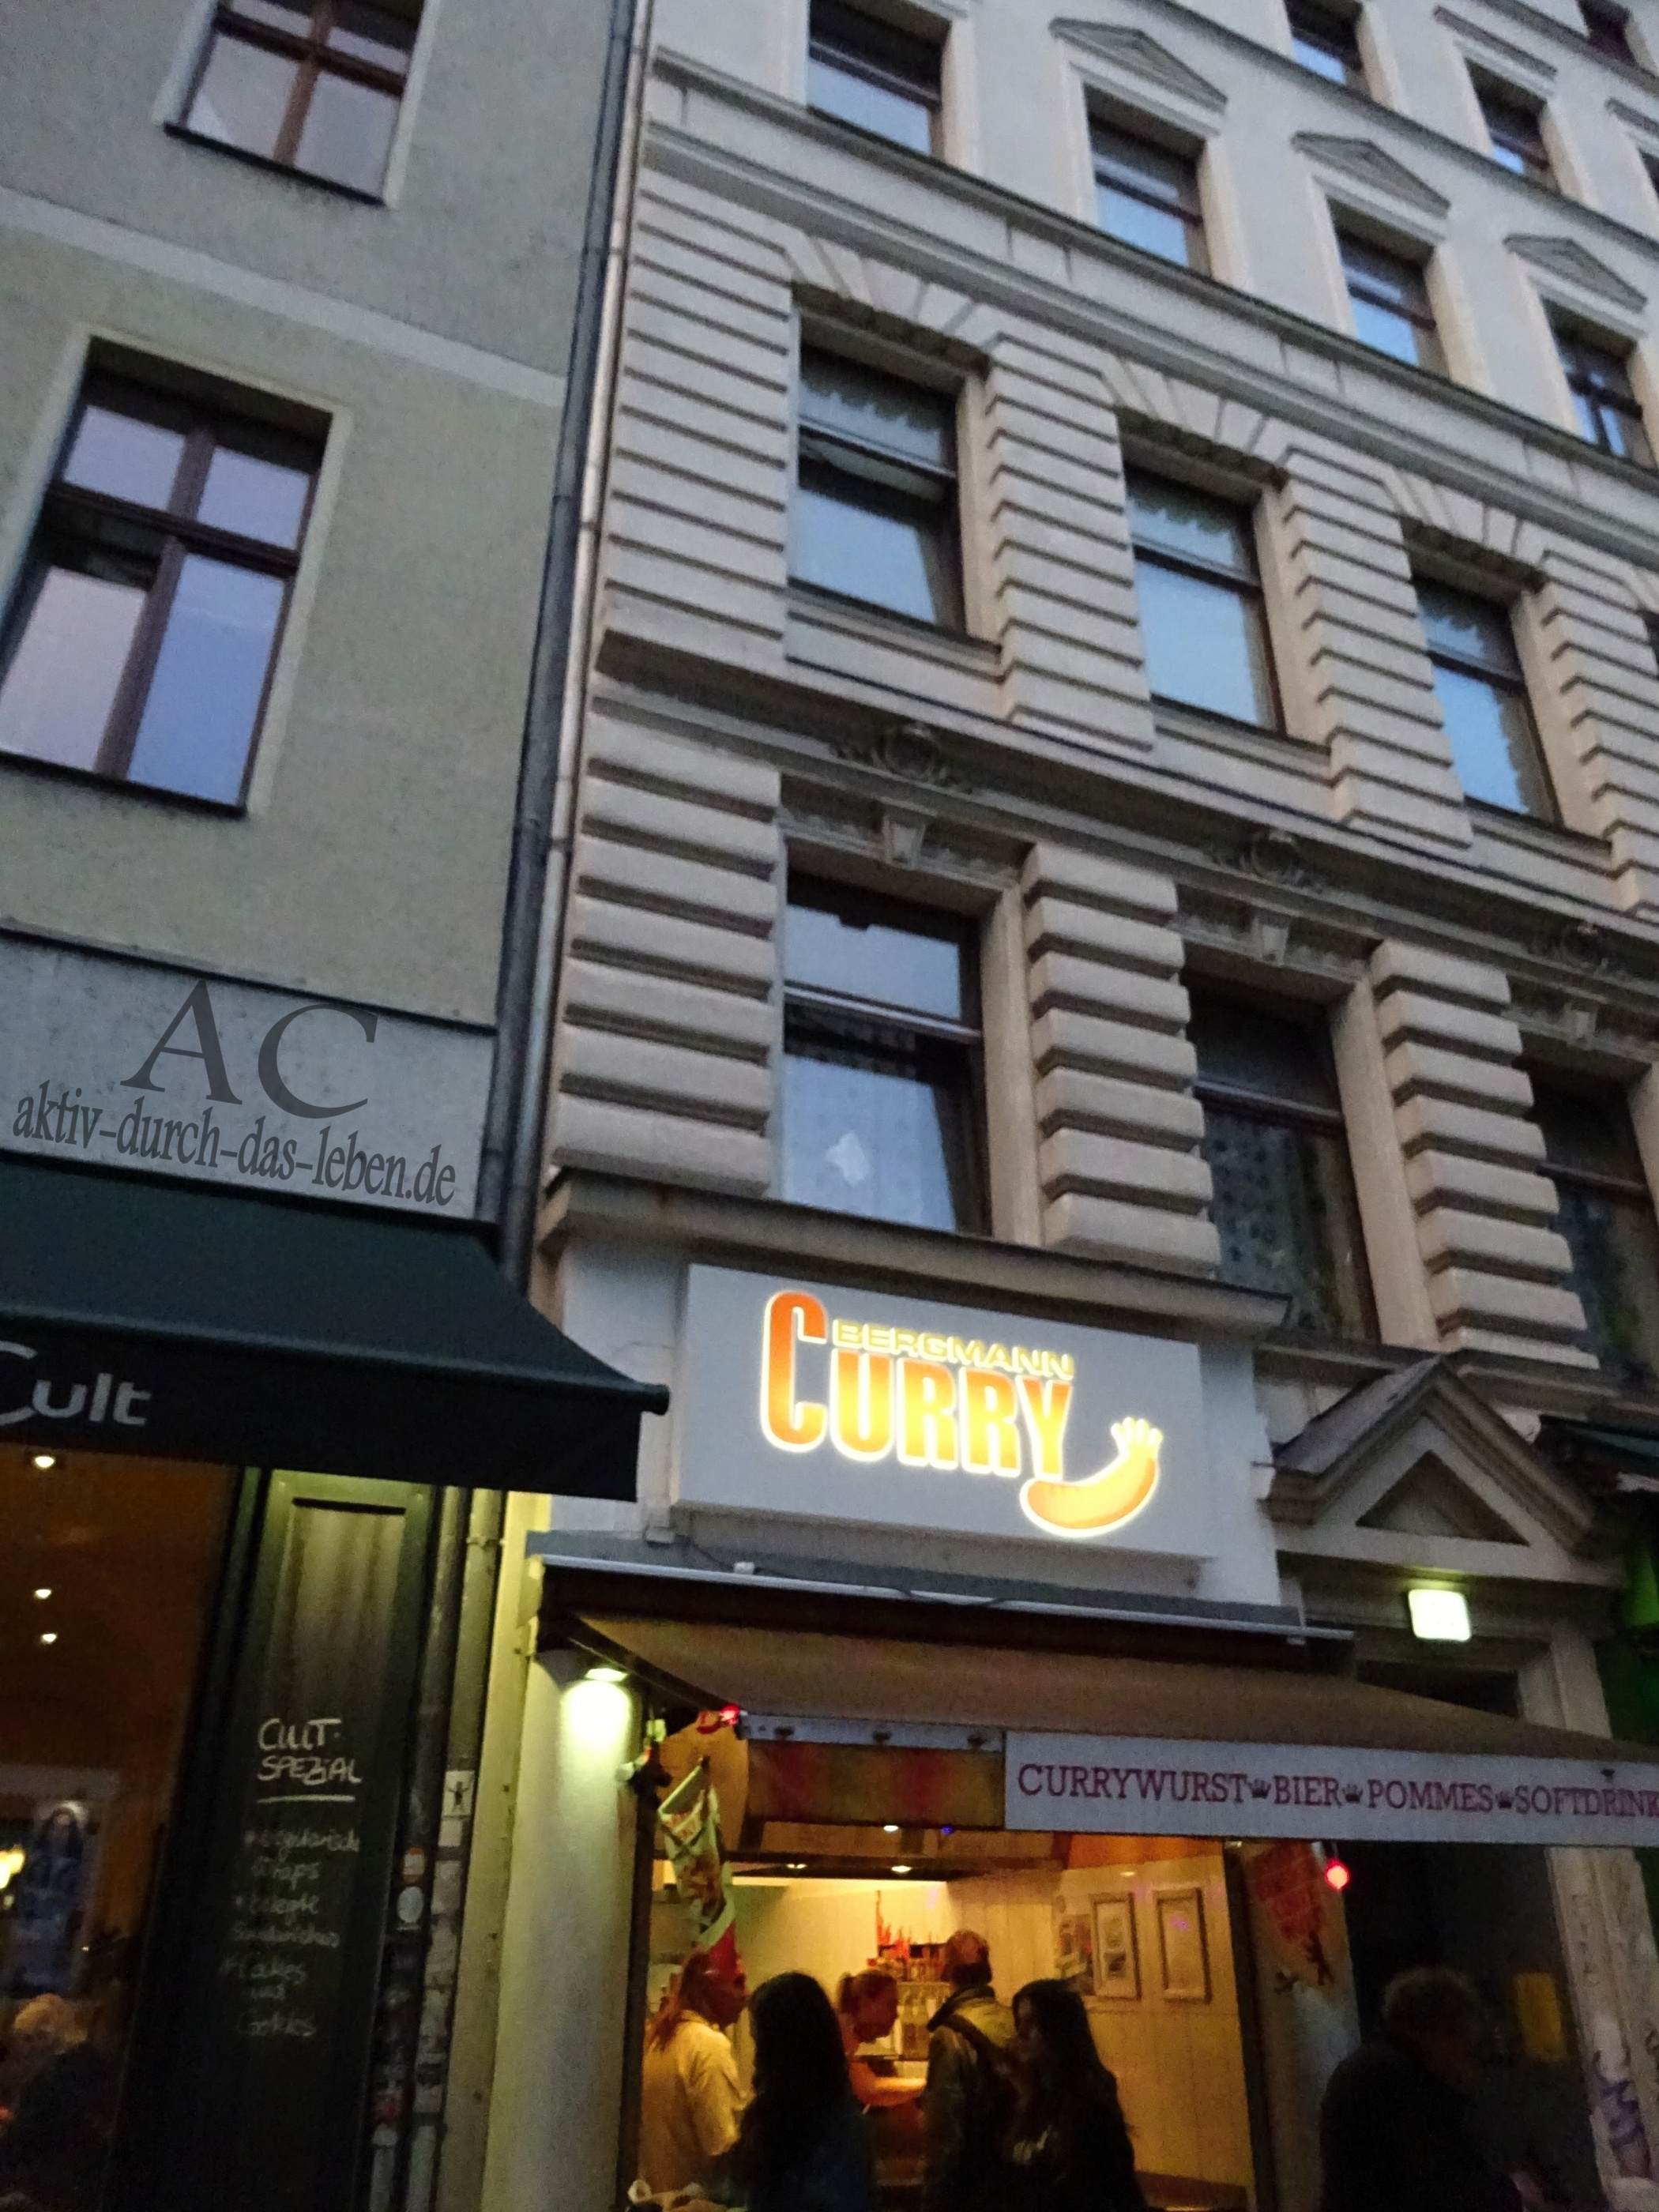 Bergmann Curry in Berlin Kreuzberg